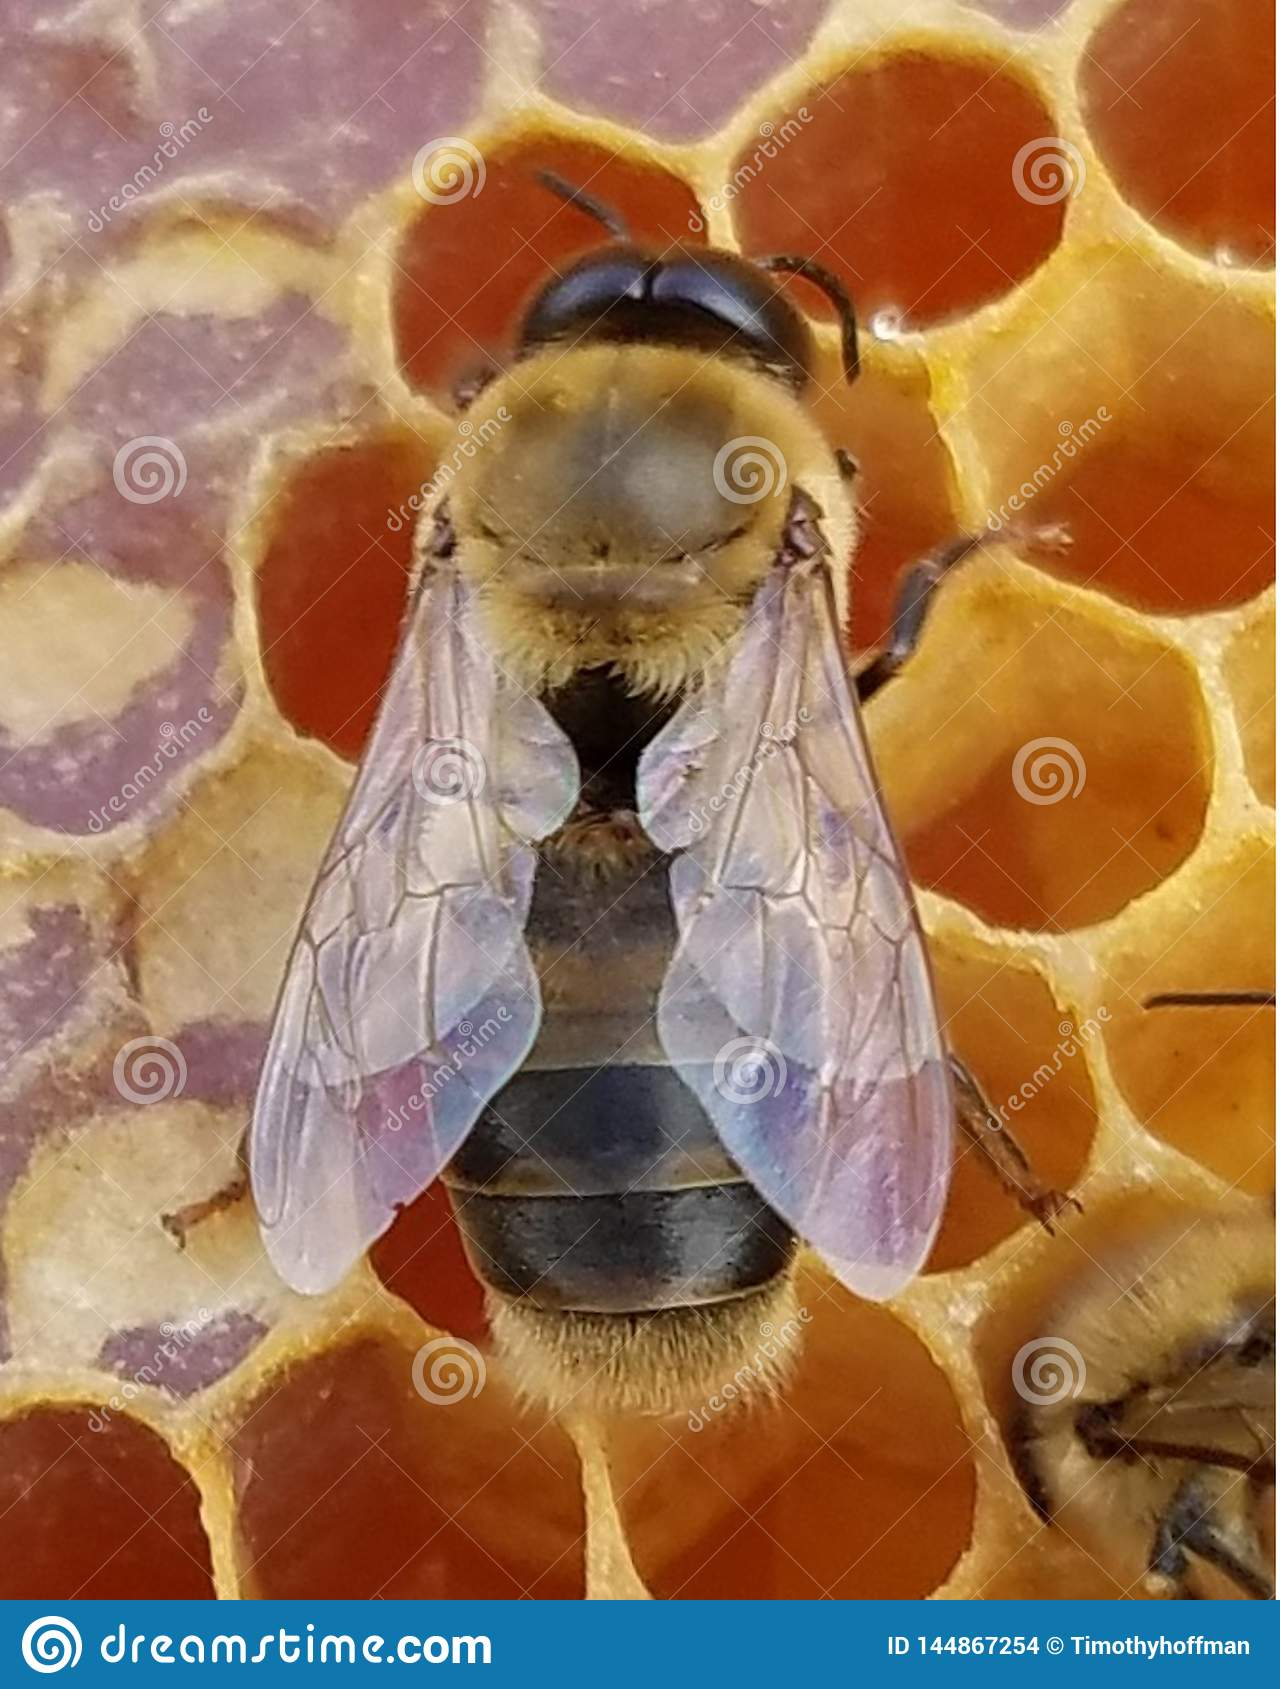 Young Honey Bee Drone on Honeycomb